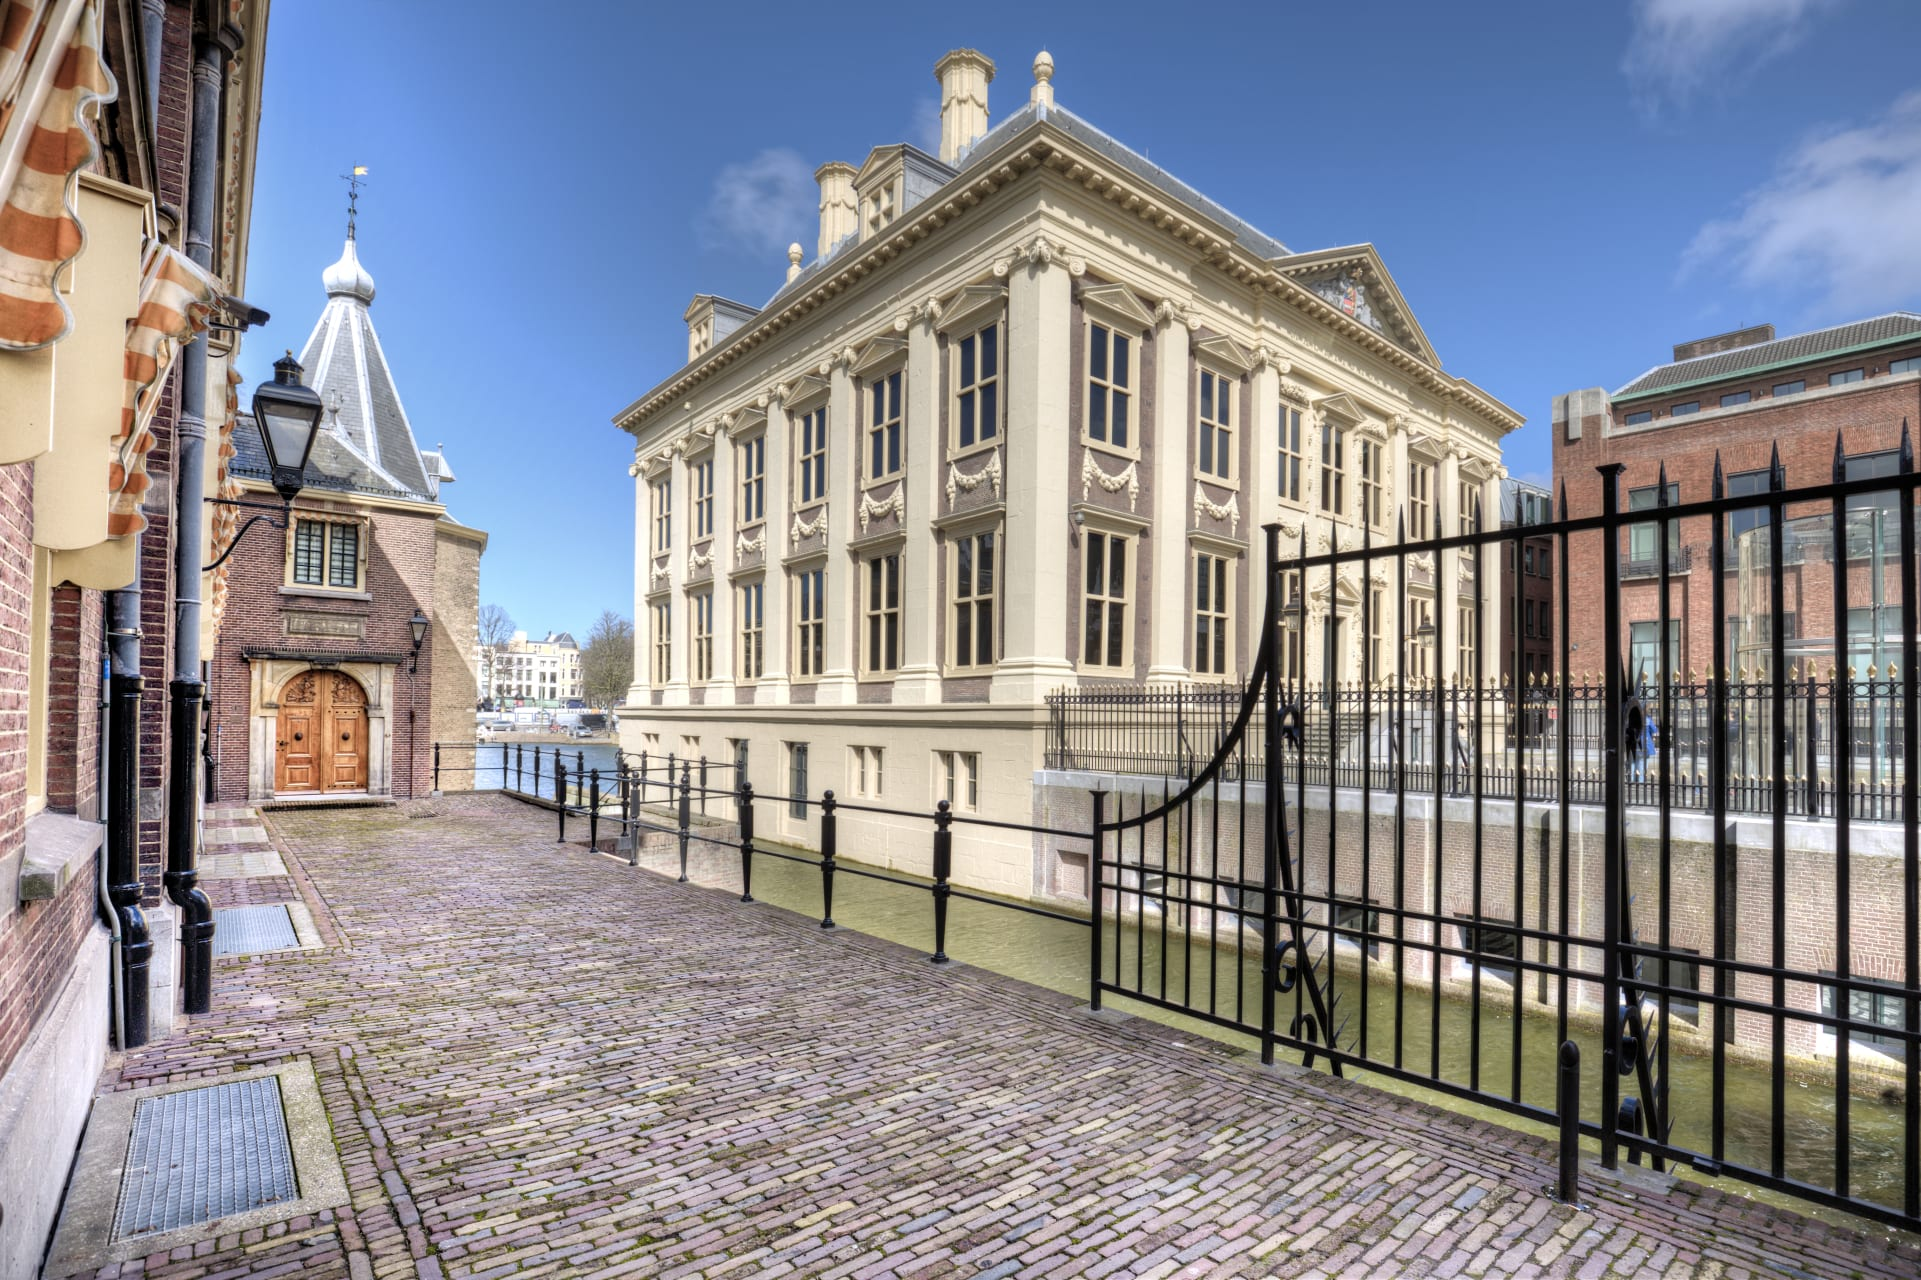 The Hague - Private Tour through the Mauritshuis, Part 2